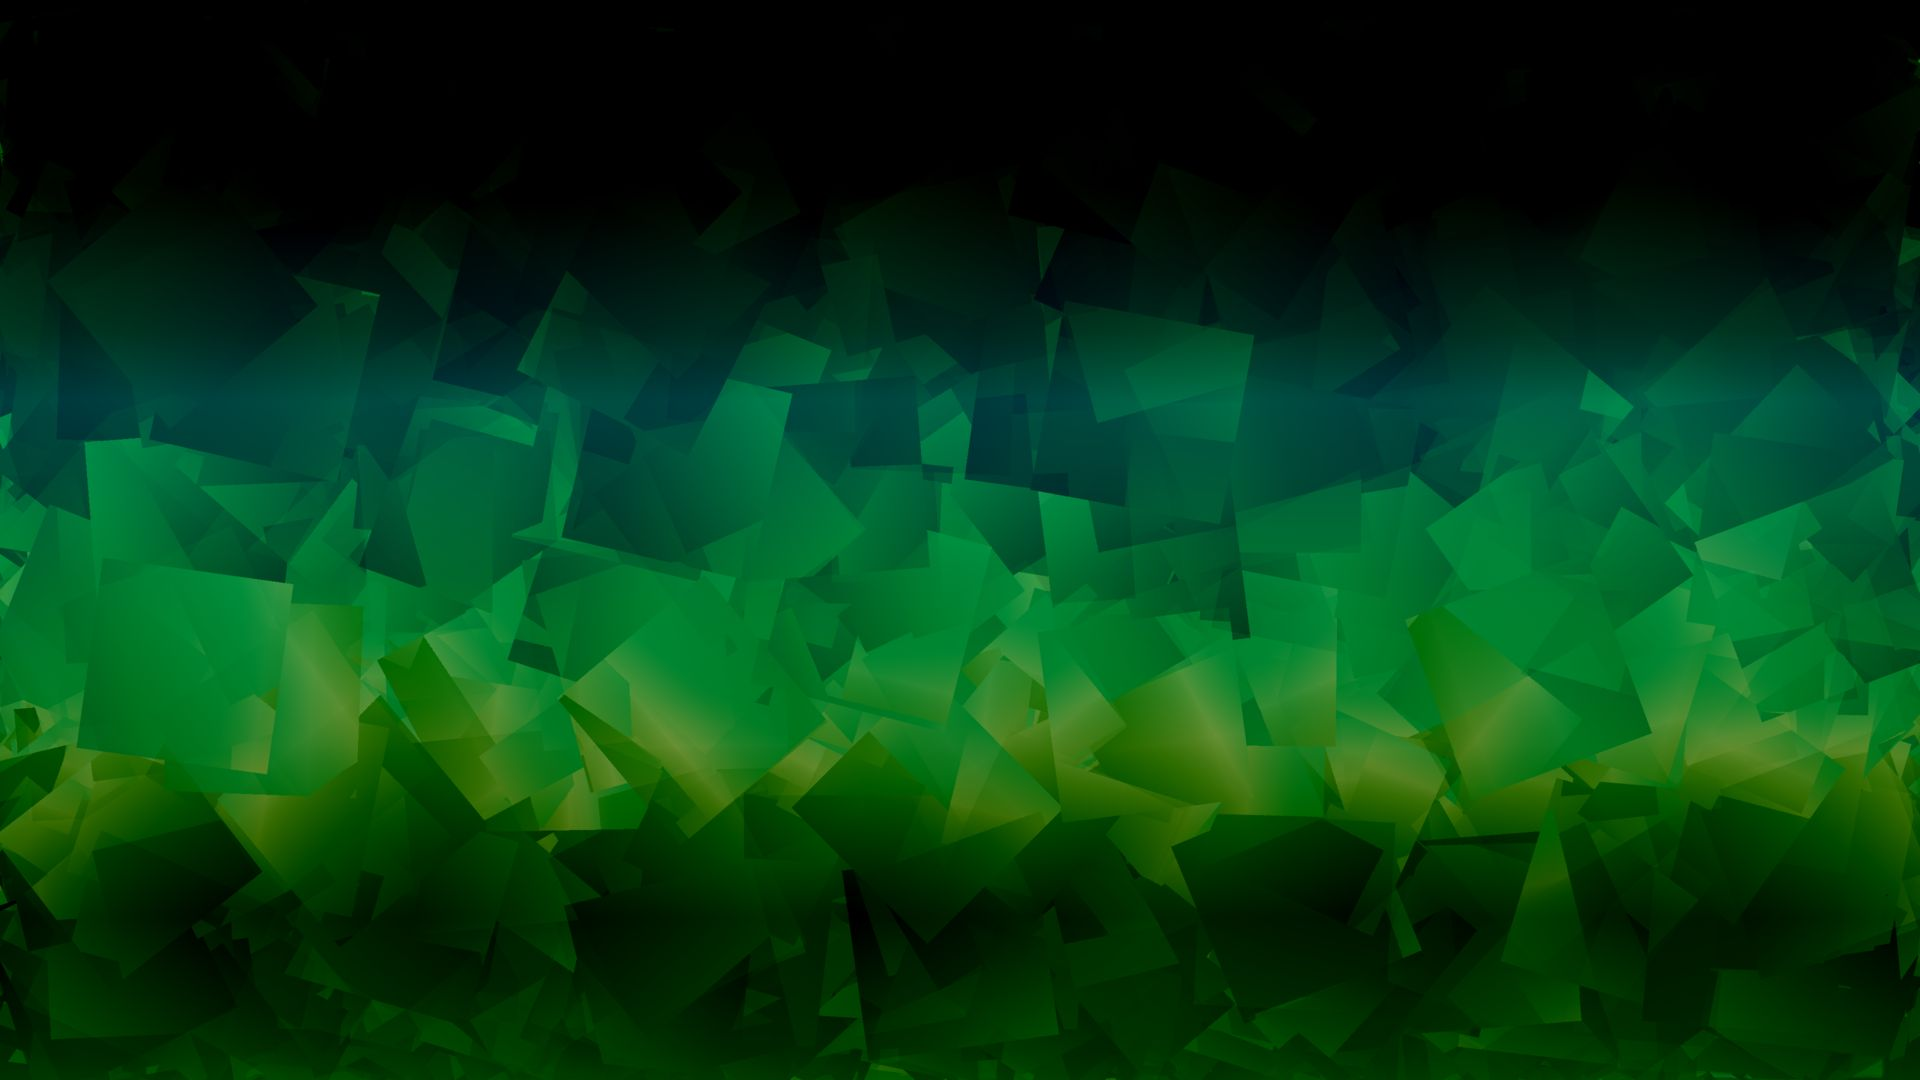 Cool Green wallpaper download